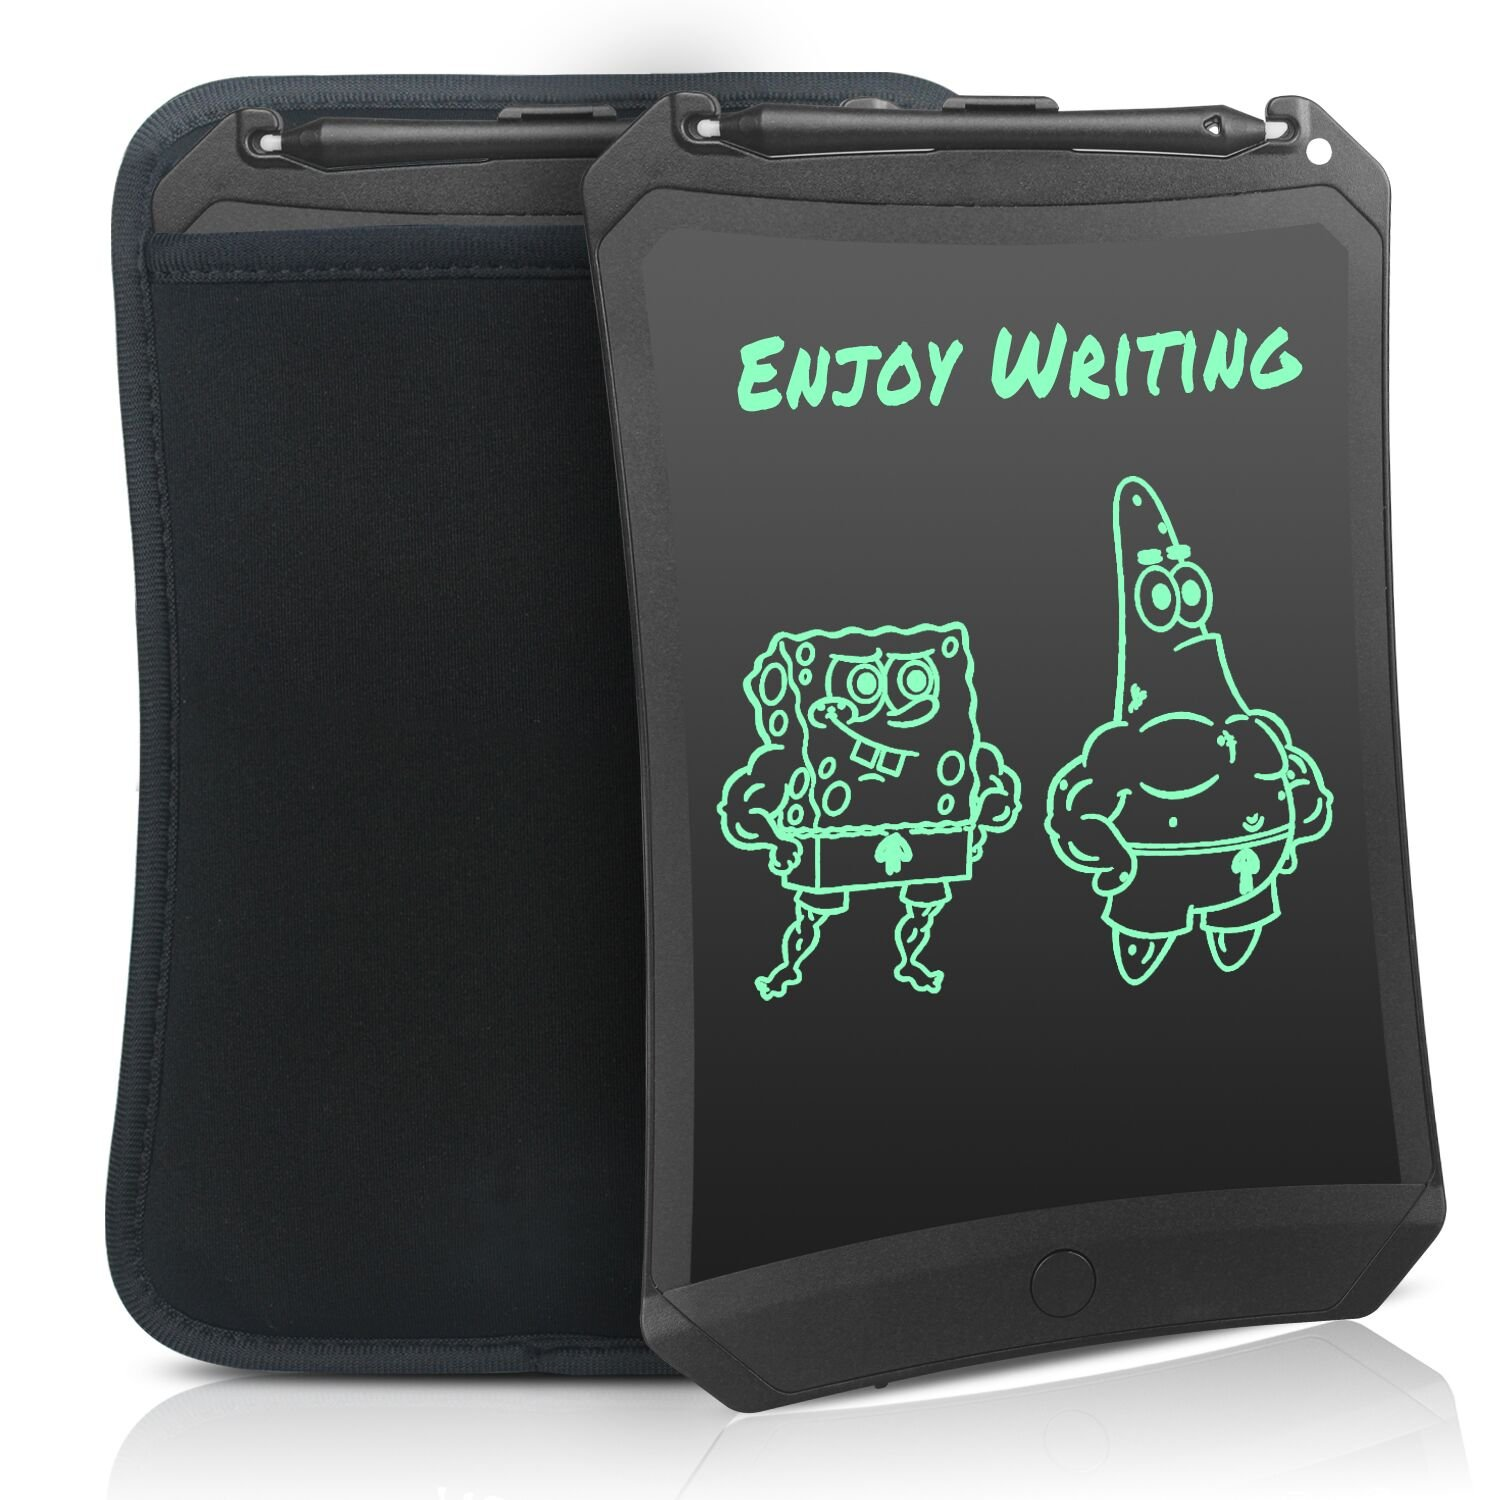 WOBEECO 8.5 Inch LCD Writing Tablet Doodle Robot Pad Drawing Board Portable Environmental Friendly Magnetic Drawing Board Graphics Tablet for Adult Kid and Toddler (Black+case) …